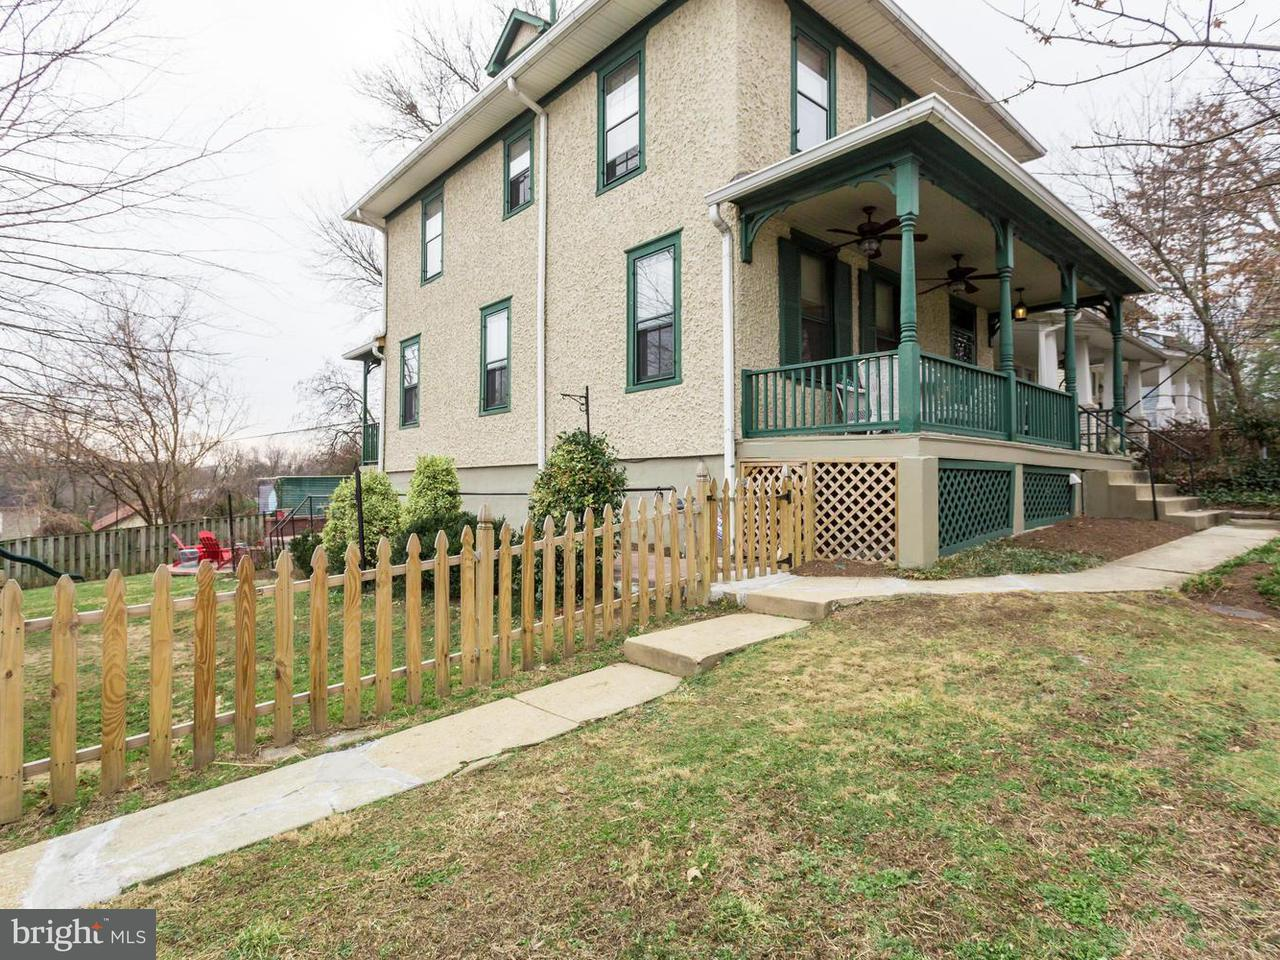 Single Family Home for Sale at 1409 Lawrence St Ne 1409 Lawrence St Ne Washington, District Of Columbia 20017 United States